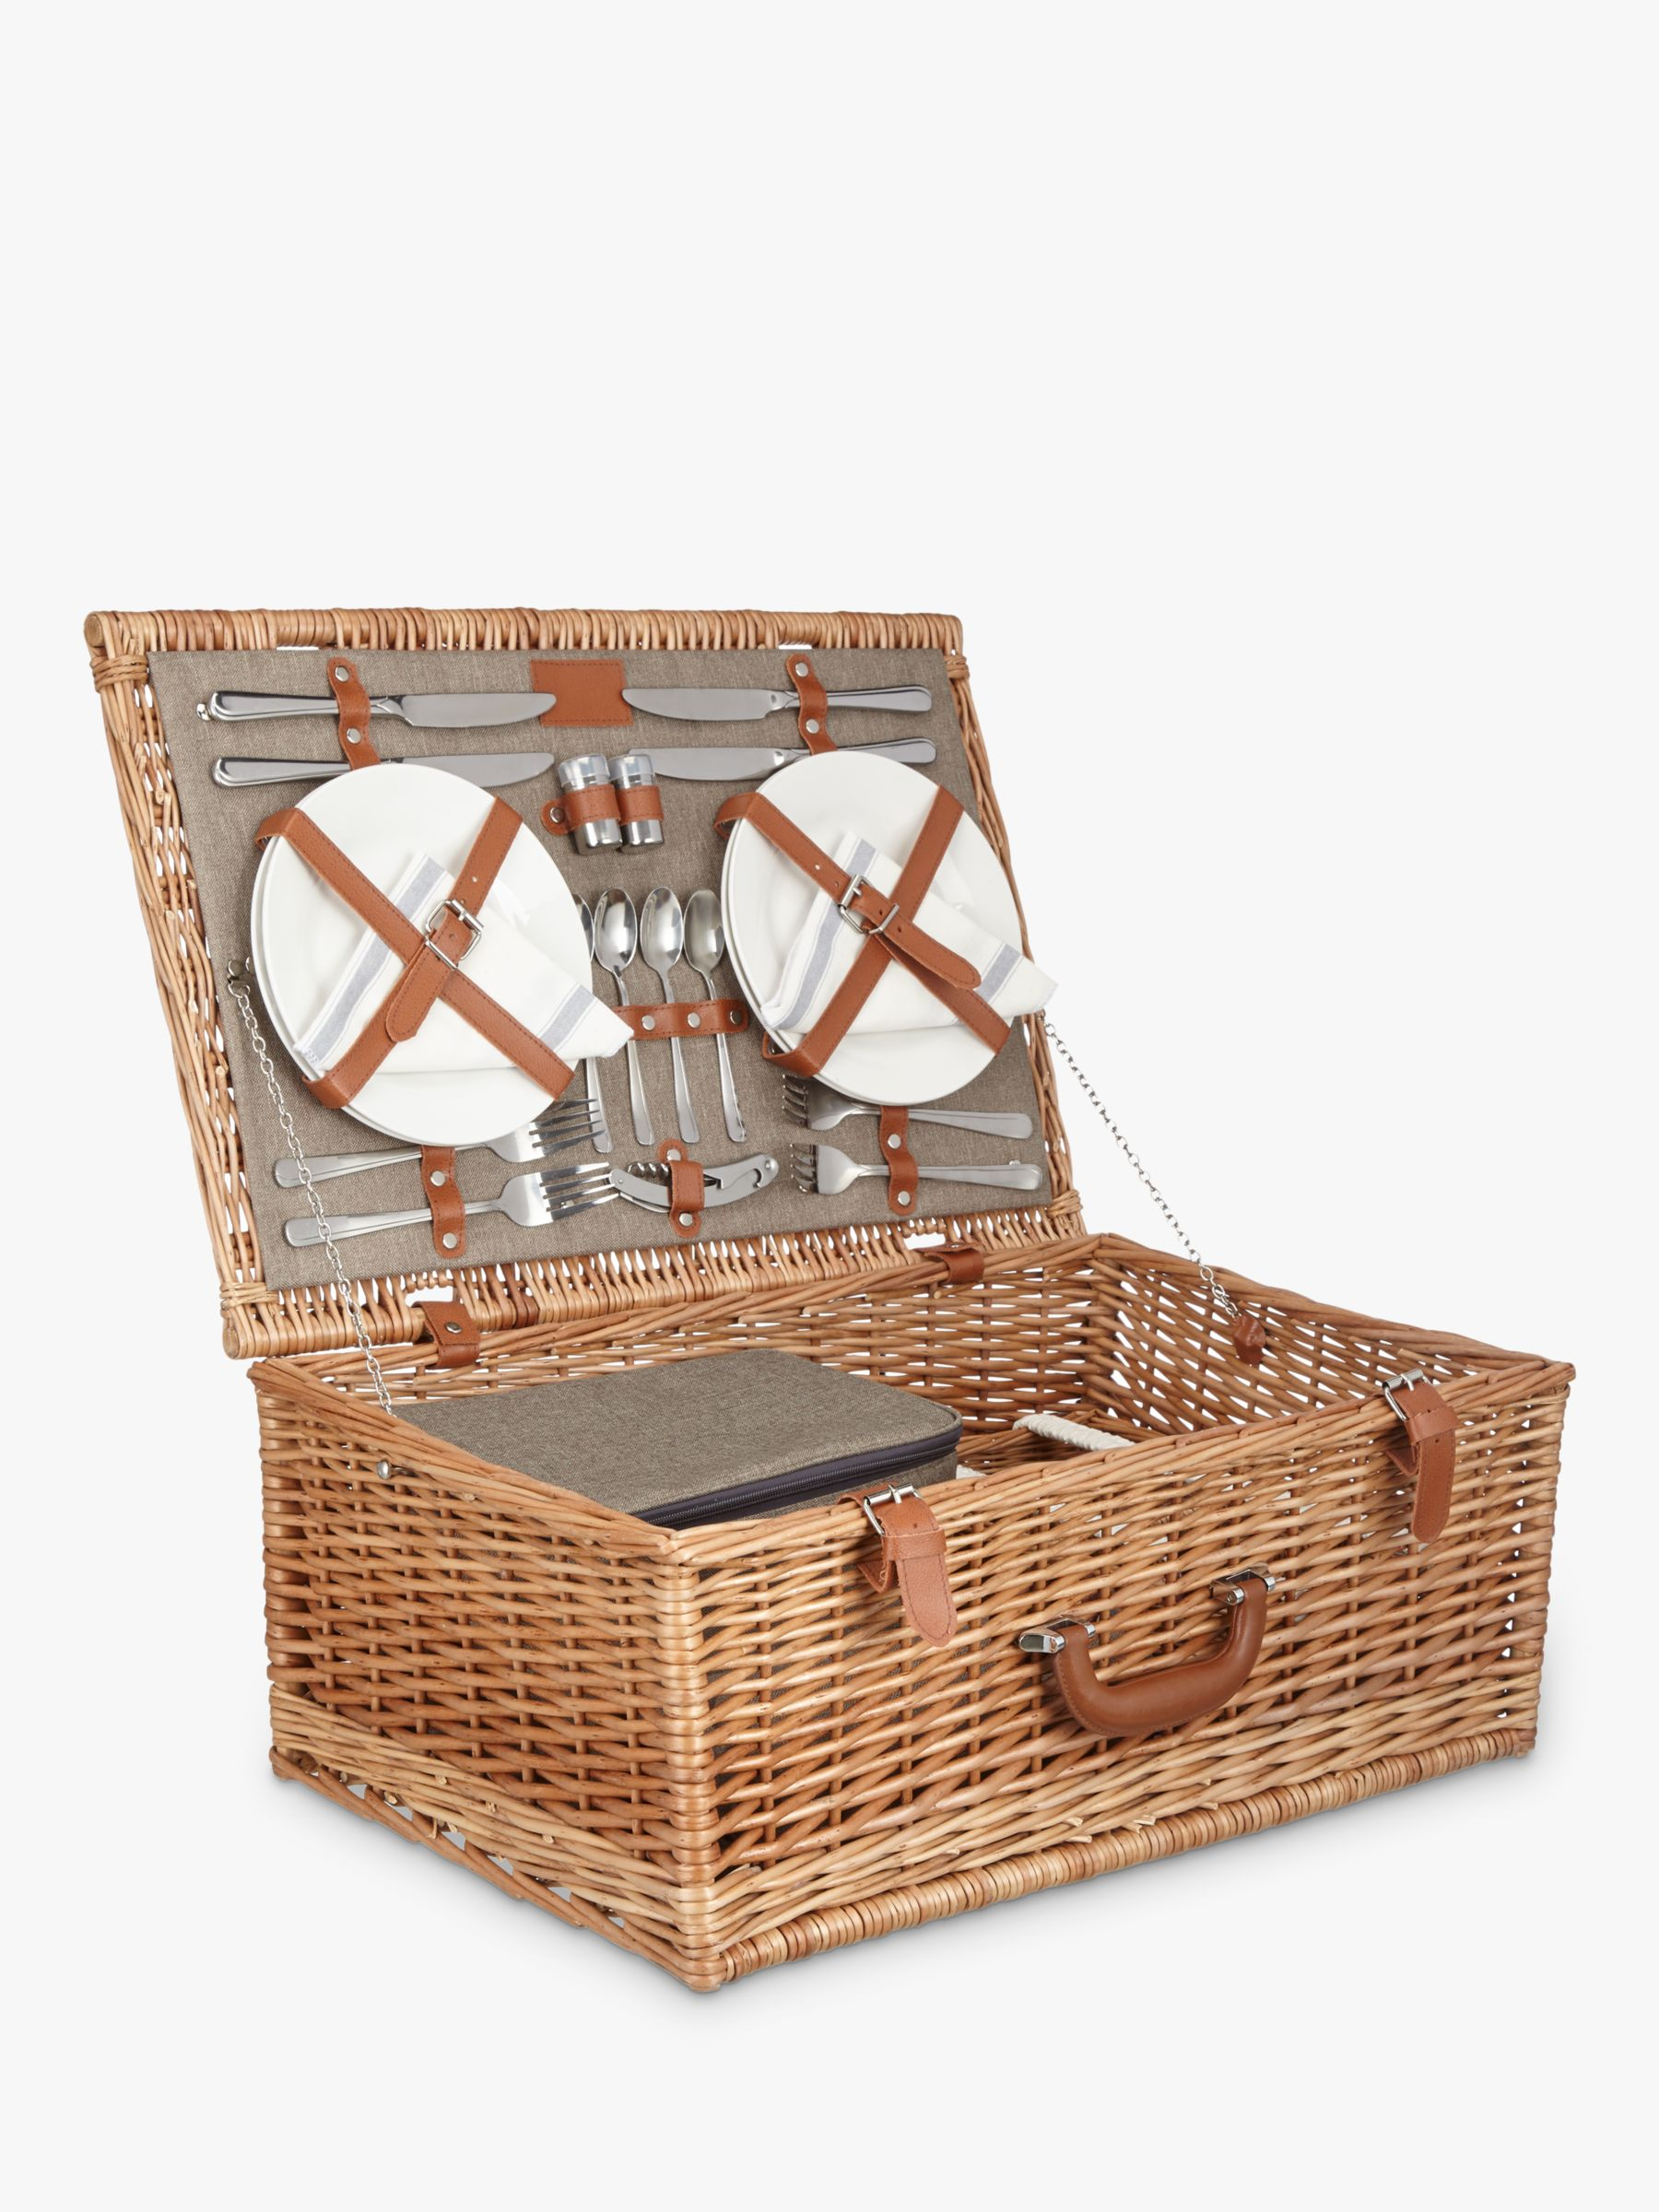 Croft Collection Luxury Filled Wicker Picnic Basket 4 Person At John Lewis Partners